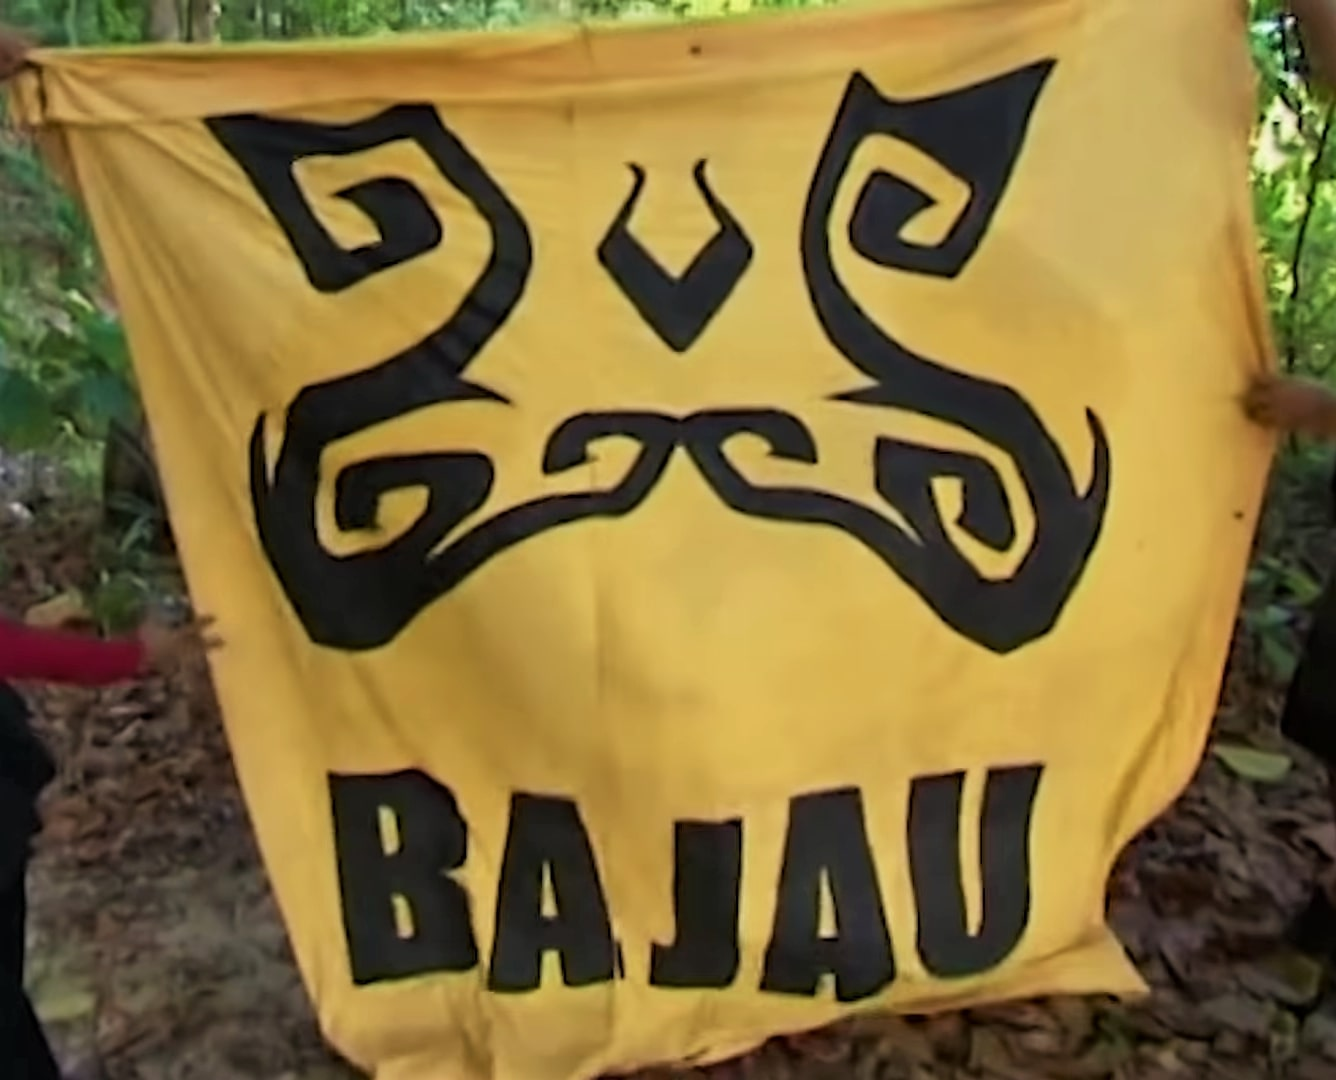 File:Bajau flag.jpg